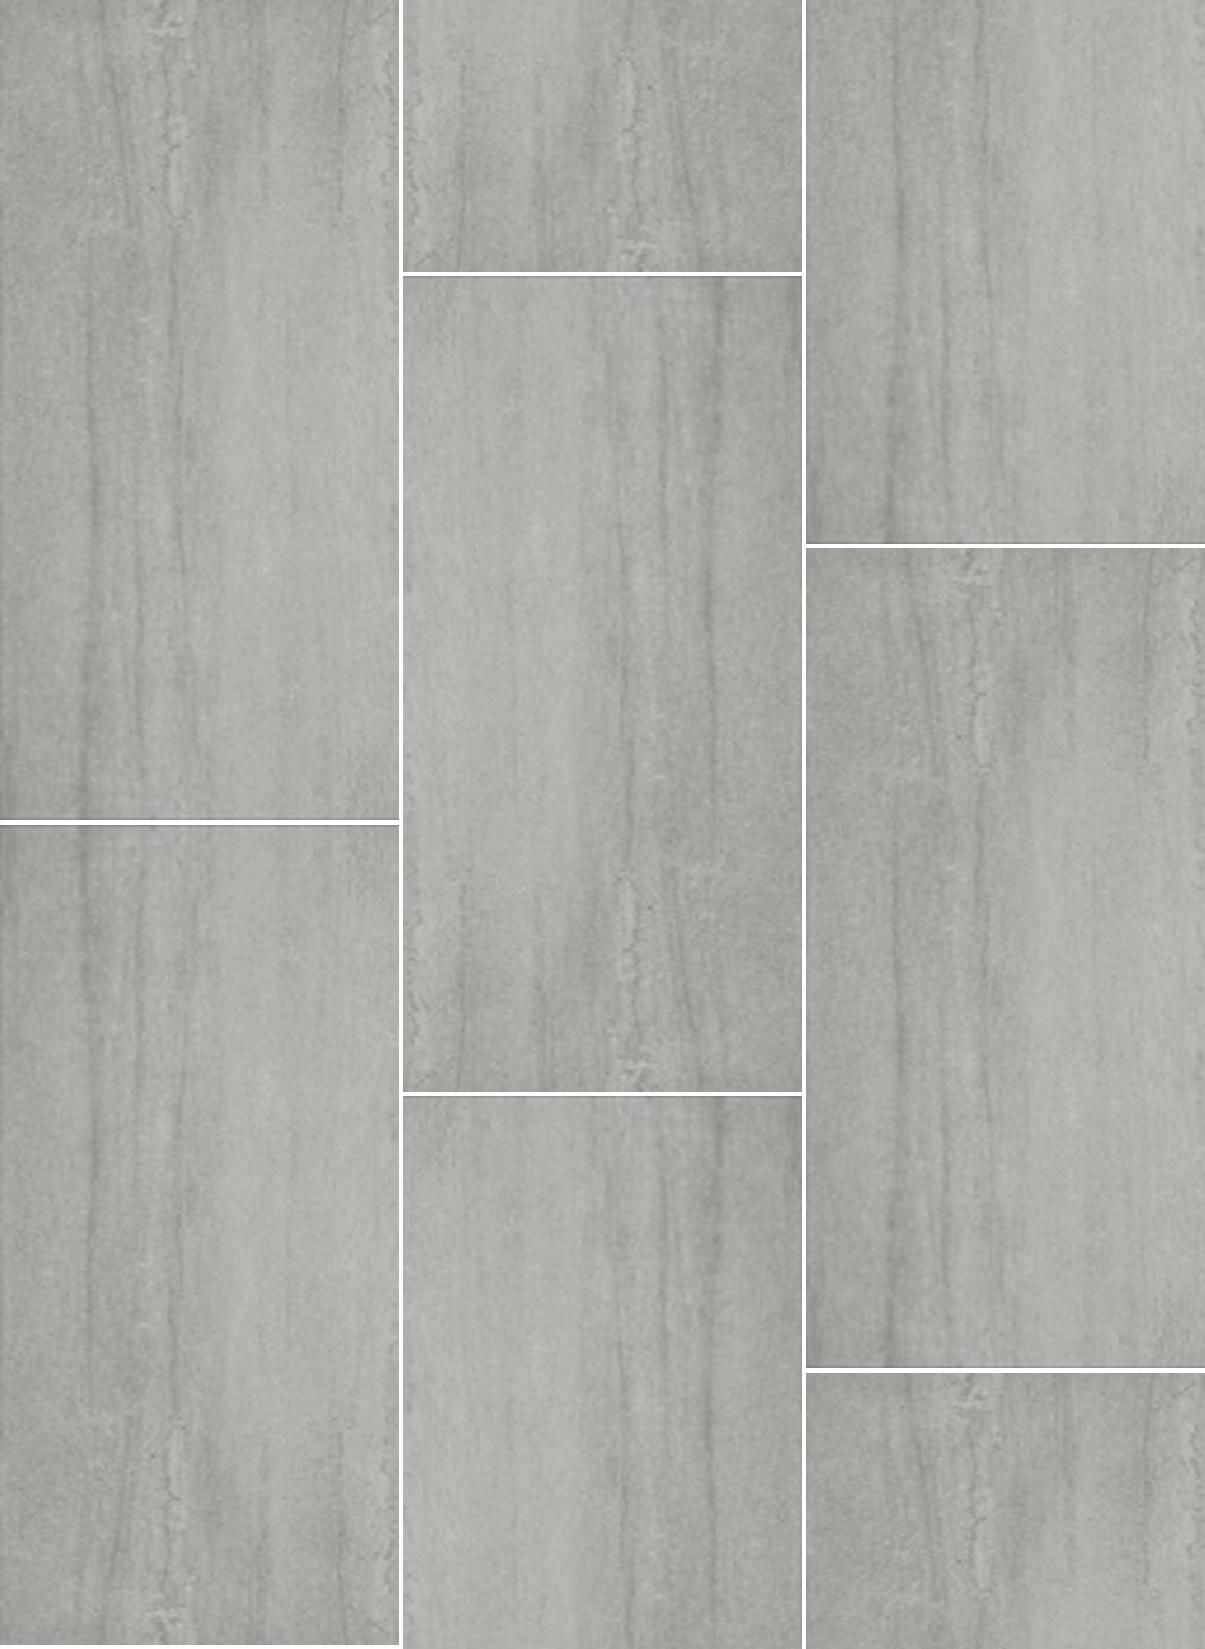 Pics For Gt Grey Floor Tiles Texture